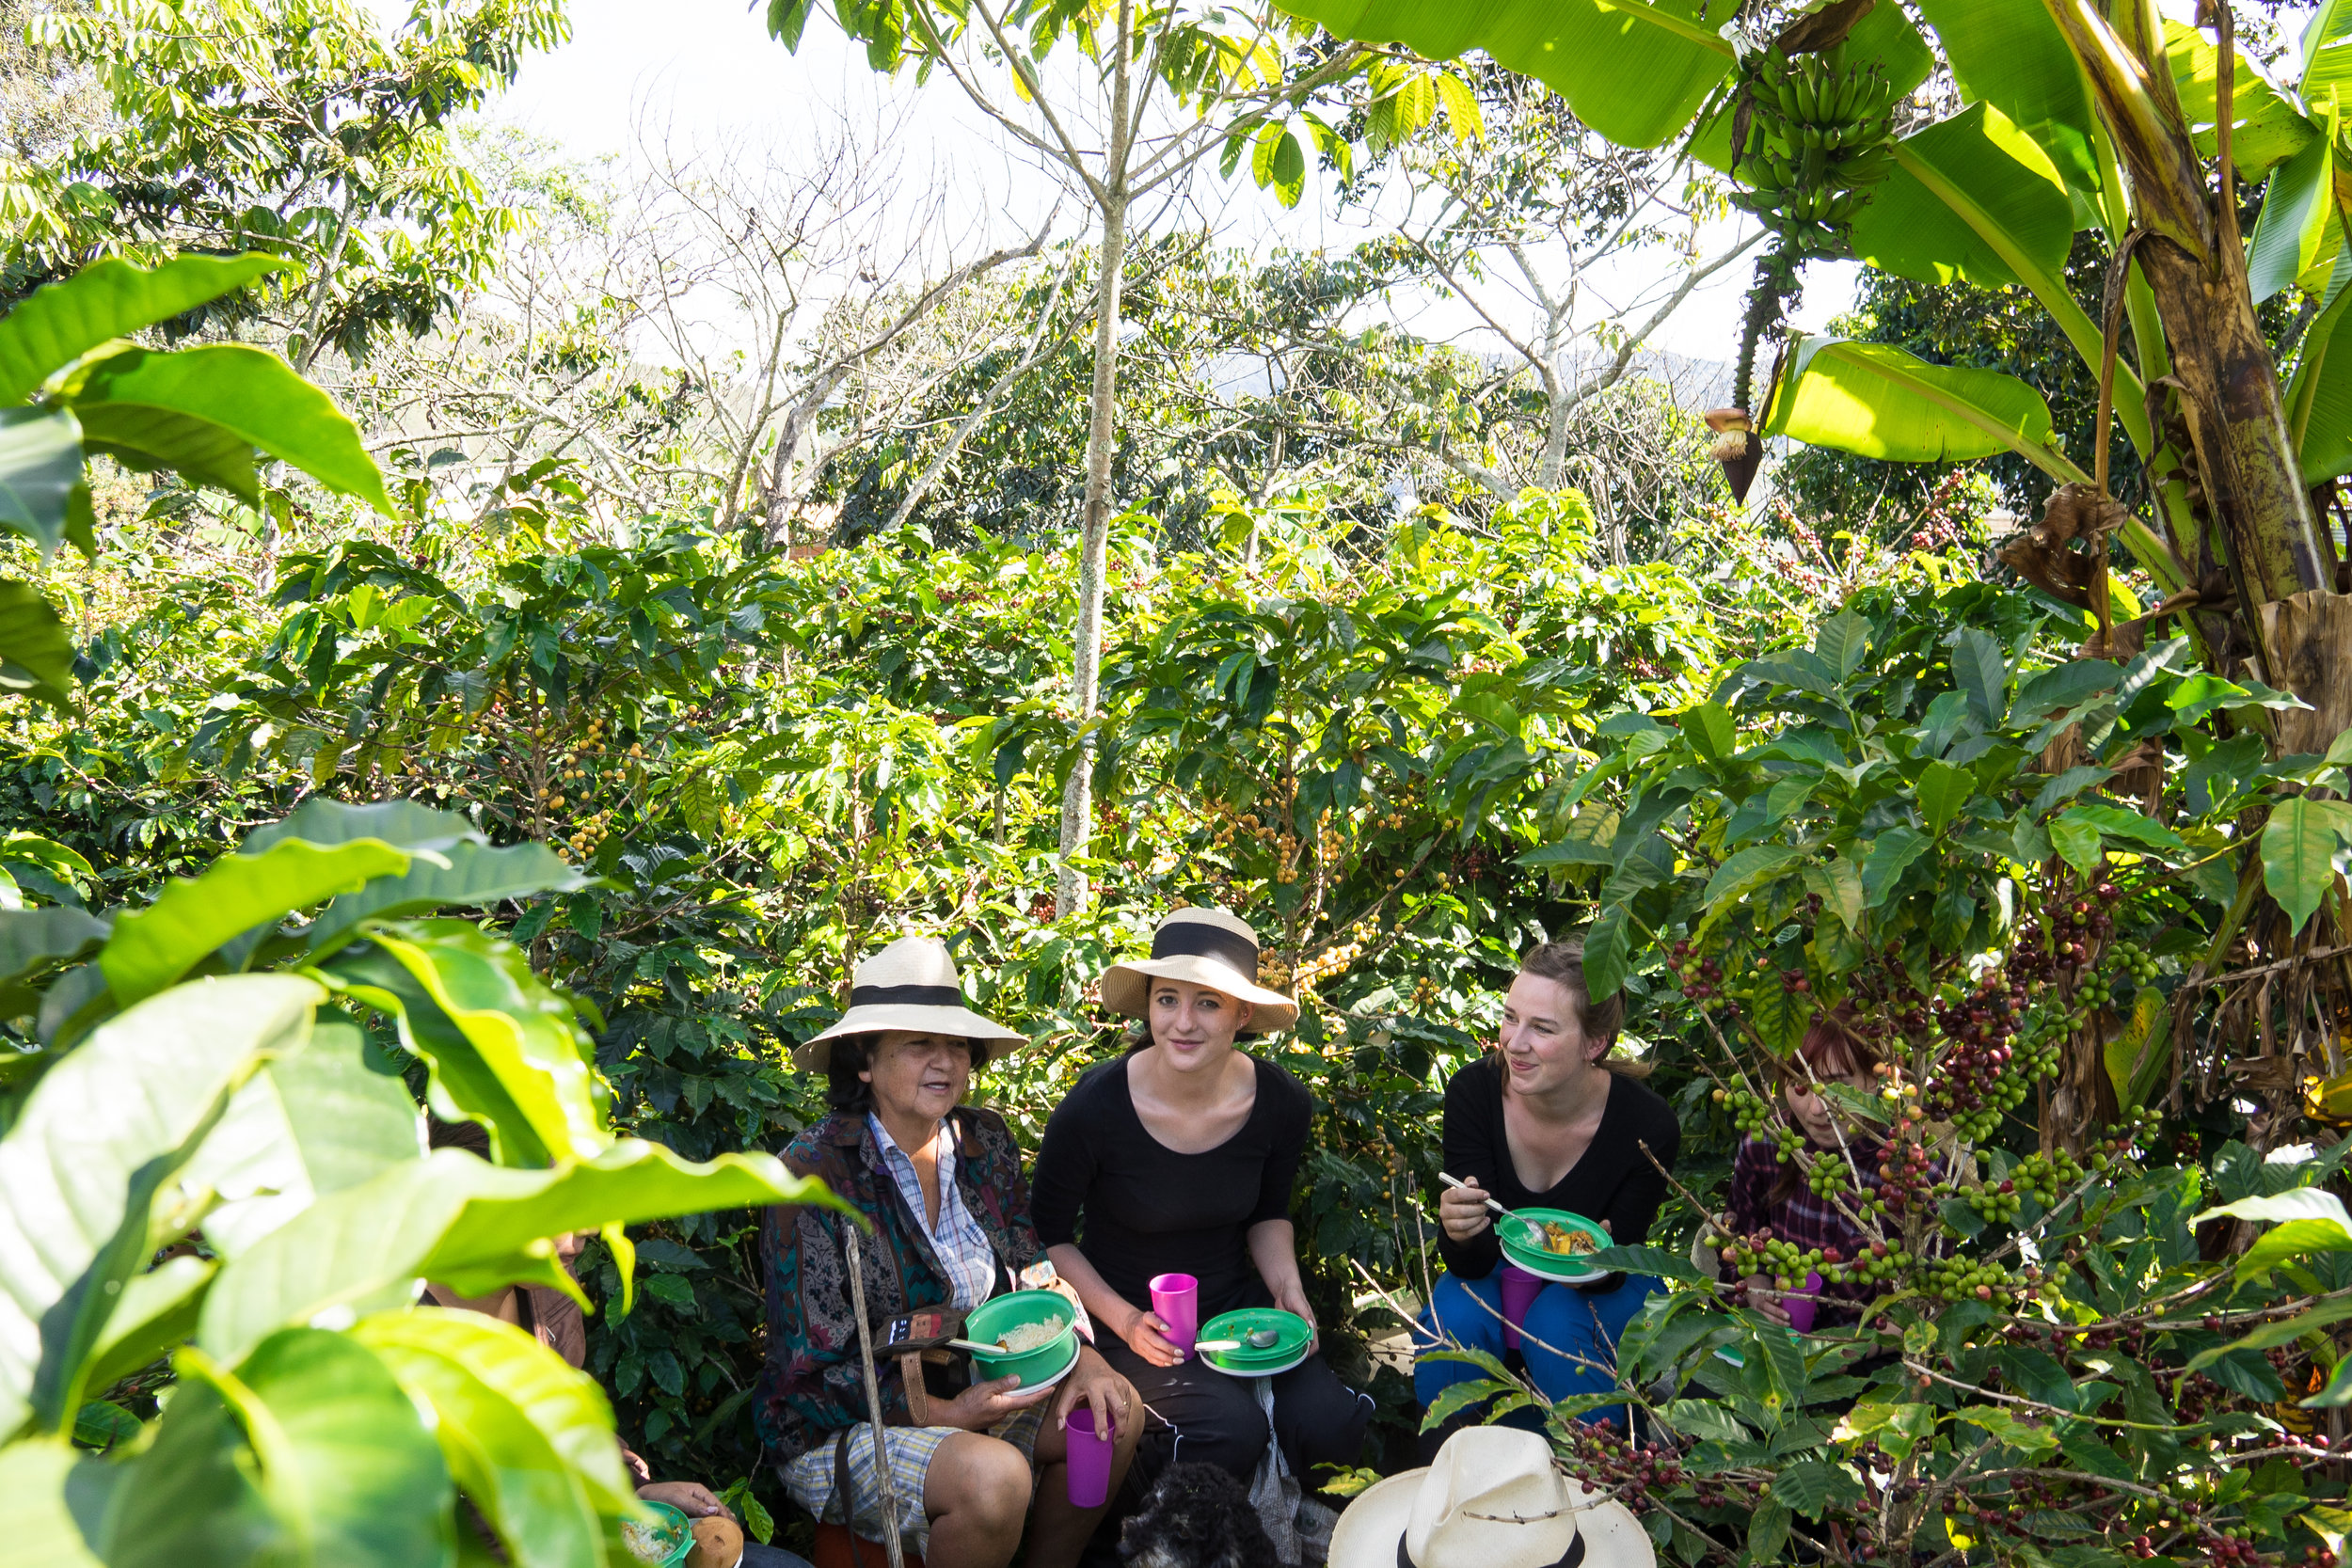 Doña Argote and field baristas taking a lunch break during picking season.